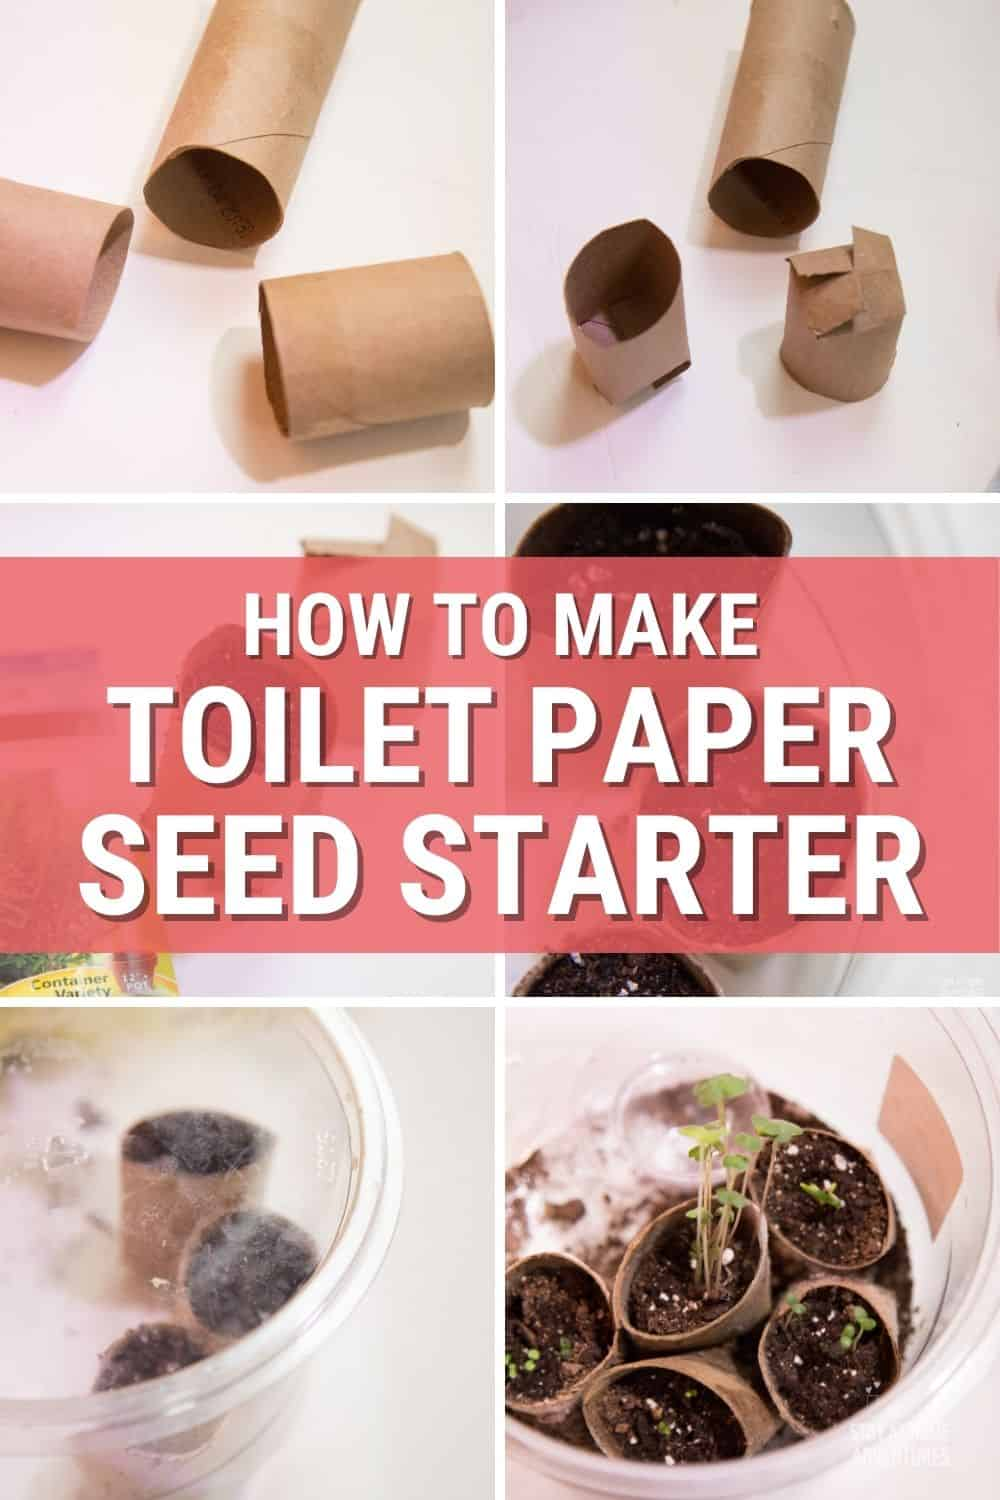 This toilet paper seed starter tutorial is all you need to seed starting indoor this season. Learn all you need to know and start growing your garden today. #gardening #seeding #toiletpaperseedstarter via @mystayathome